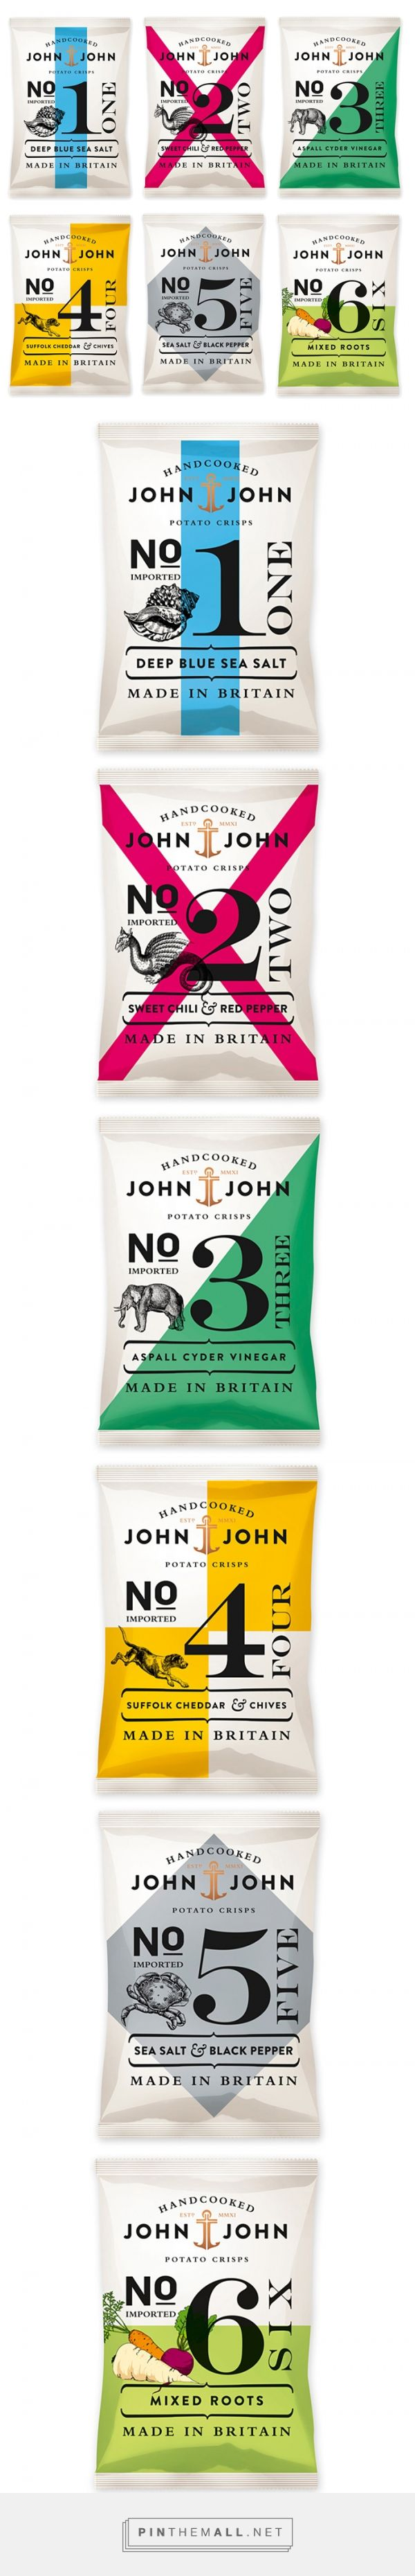 John & John Potato Crisps Packaging by Peter Schmidt Group | Fivestar Branding Agency – Design and Branding Agency & Curated Inspiration Gallery